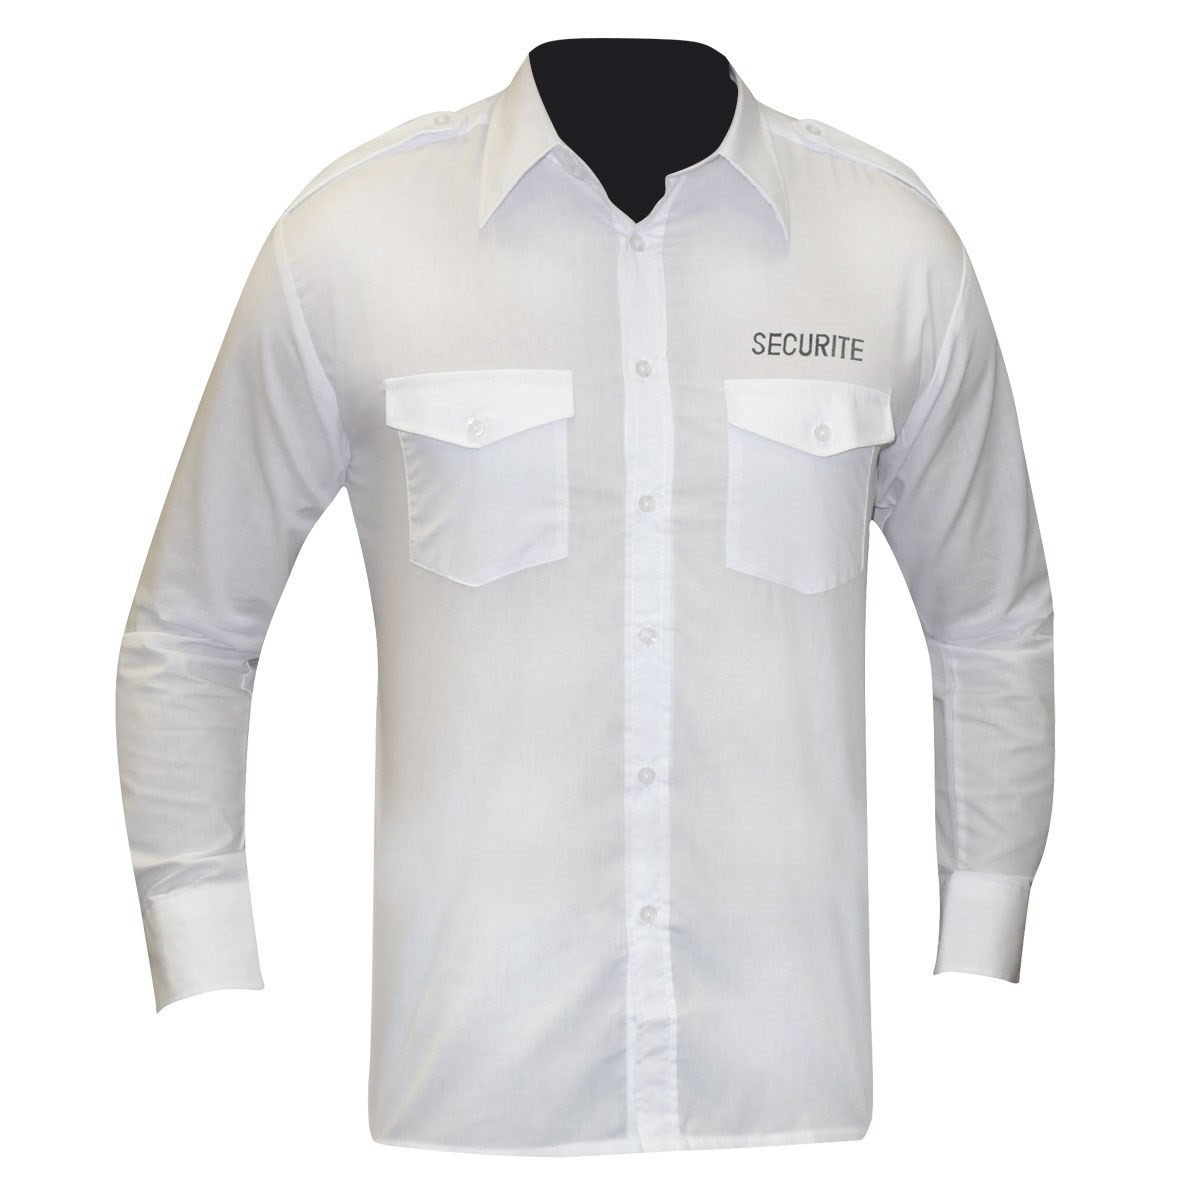 chemise-pilote-blanche-manches-longues-brodee-securite